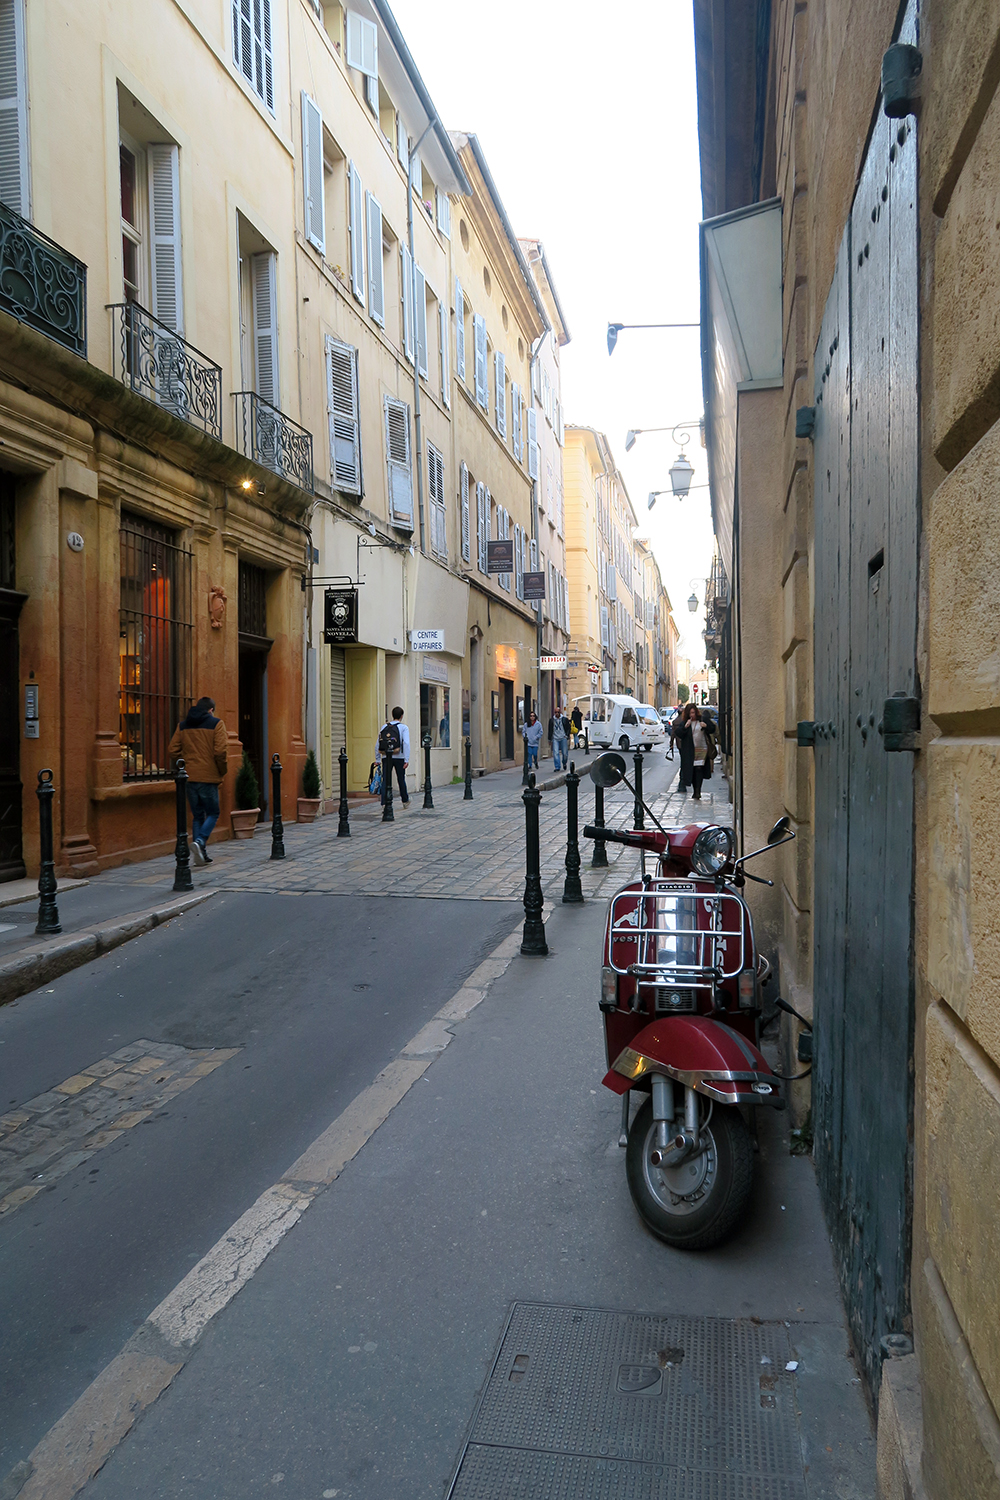 Strolling through the Streets of Aix-en-Provence